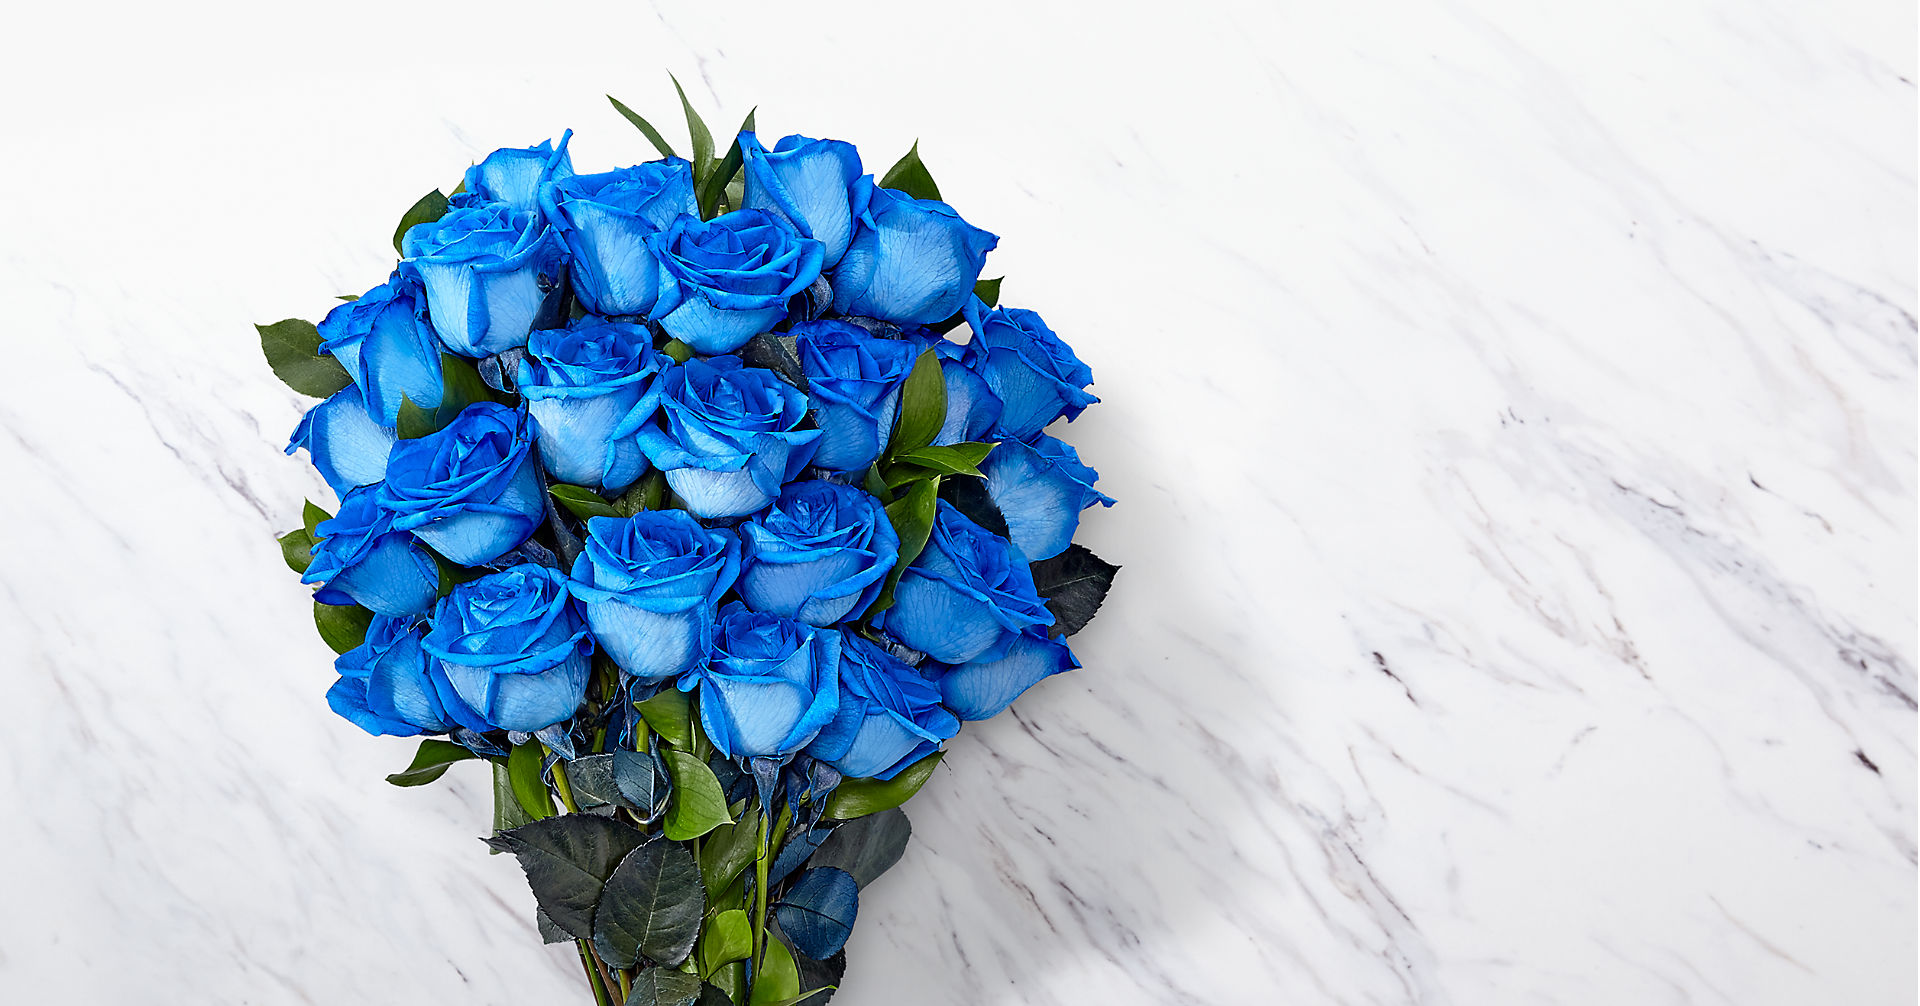 Extreme Blue Hues Fiesta Rose Bouquet - 24 Stems - VASE INCLUDED - Image 2 Of 2